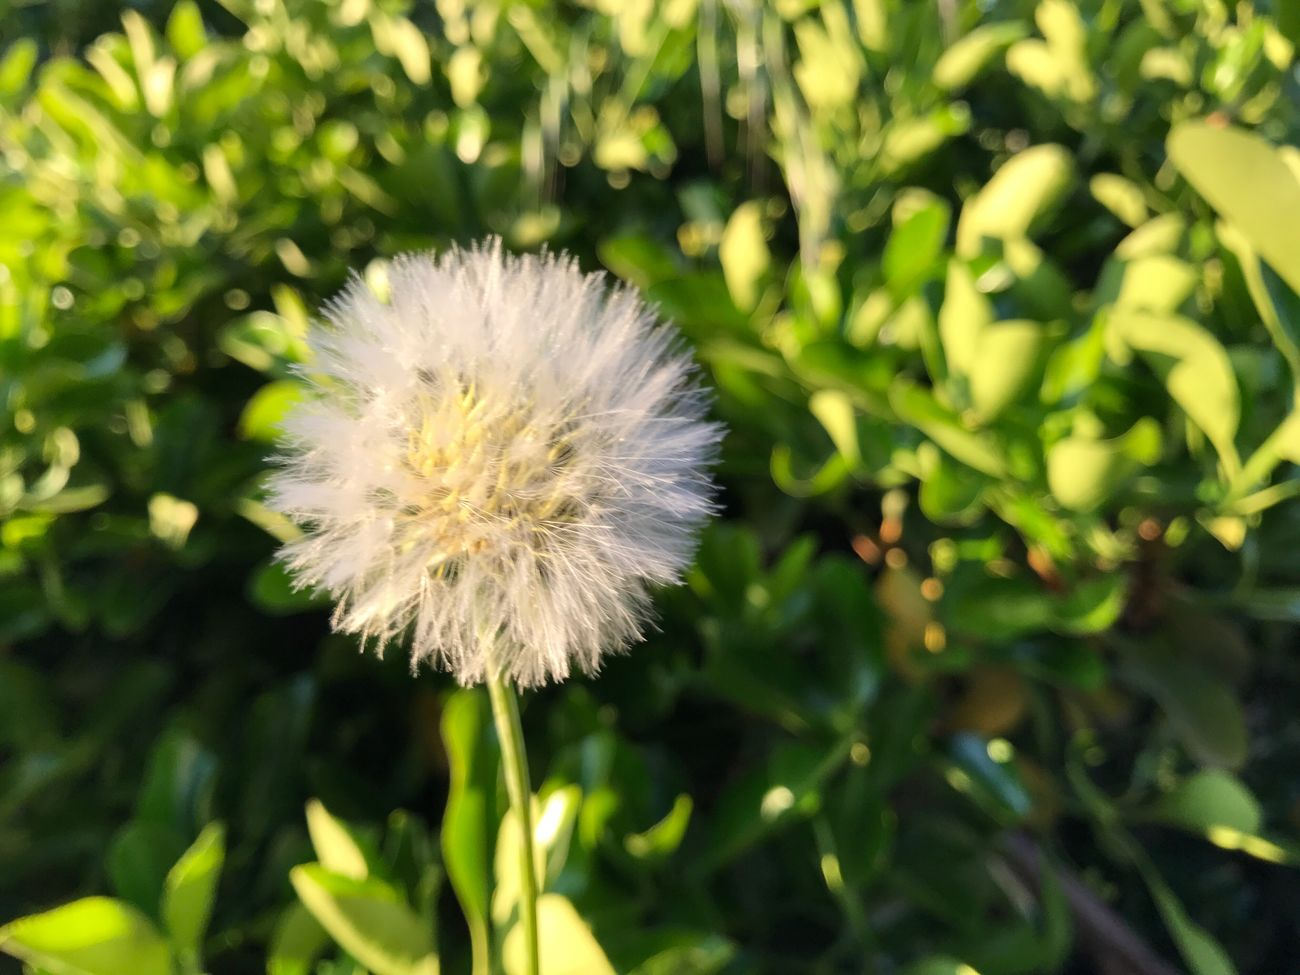 Flower Nature Growth Fragility Dandelion Flower Head Plant Beauty In Nature Freshness Focus On Foreground Day Close-up Outdoors No People Blooming